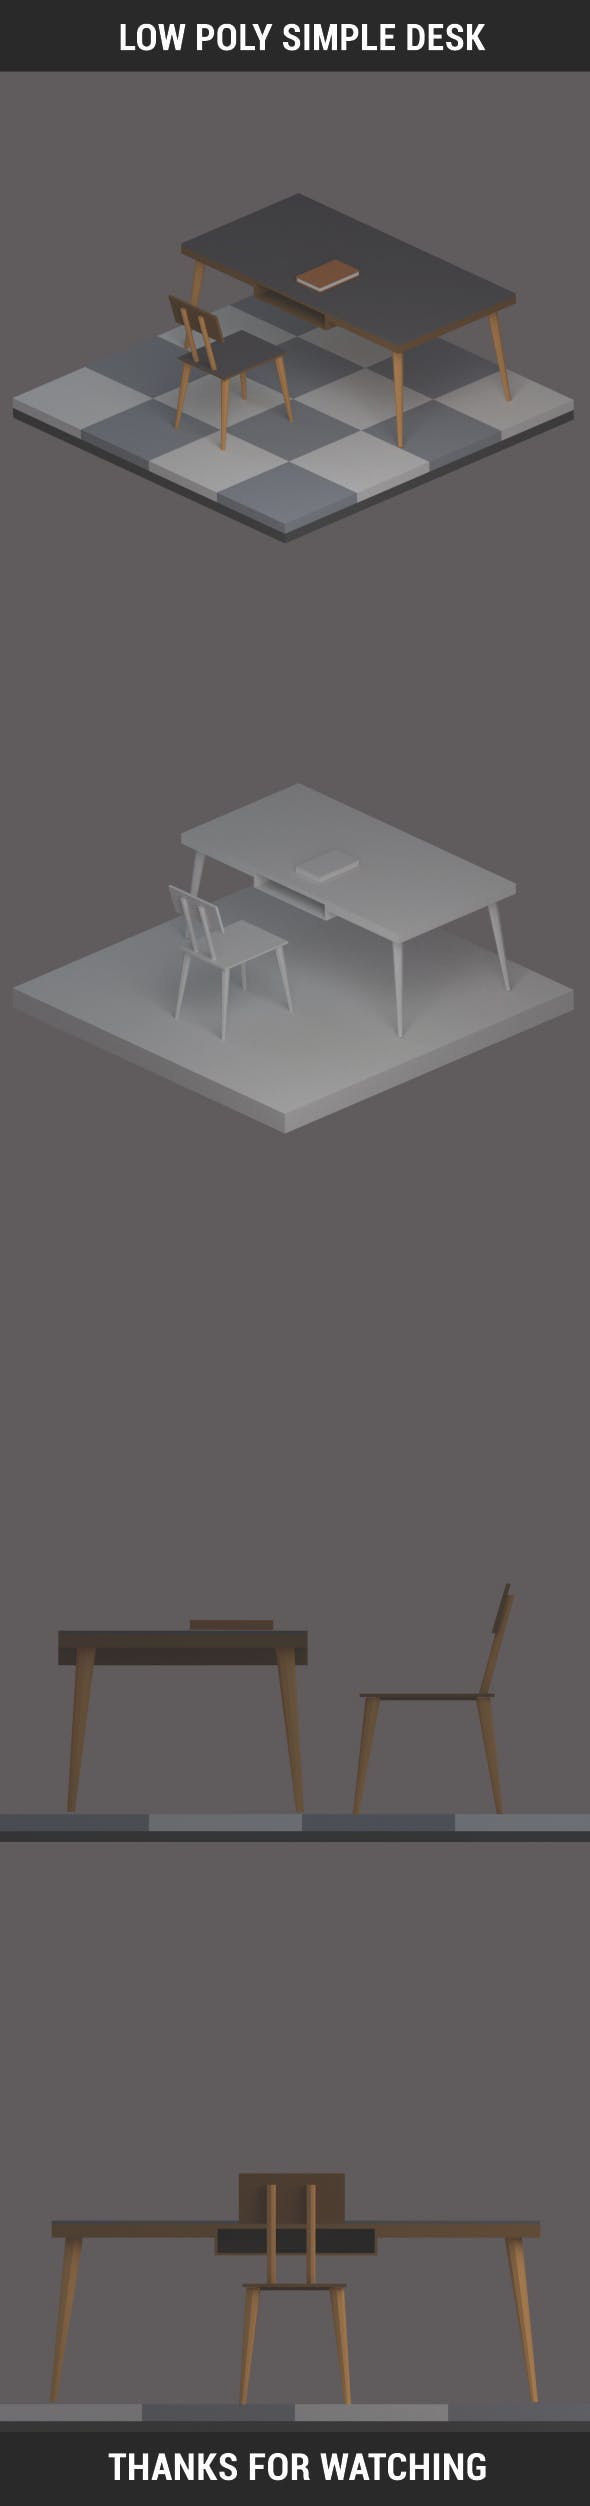 Low Poly Simple Desk - 3DOcean Item for Sale